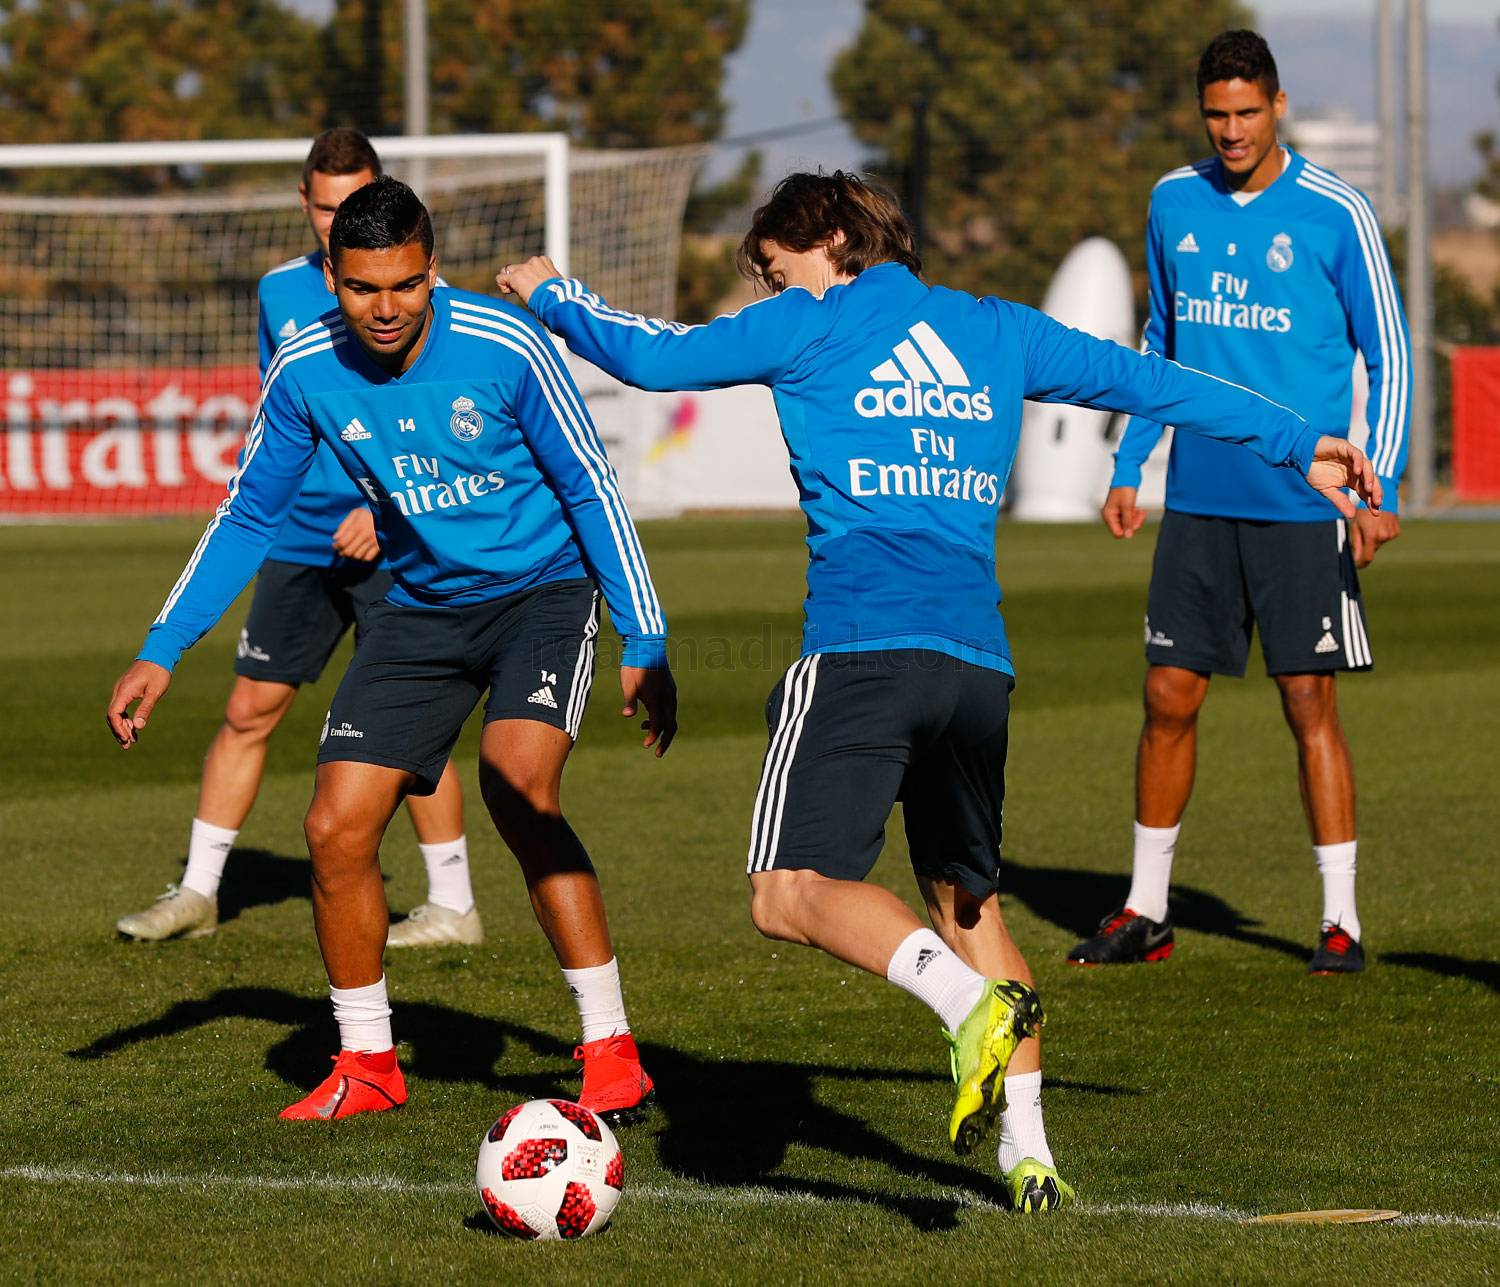 Real Madrid - Entrenamiento del Real Madrid - 15-01-2019